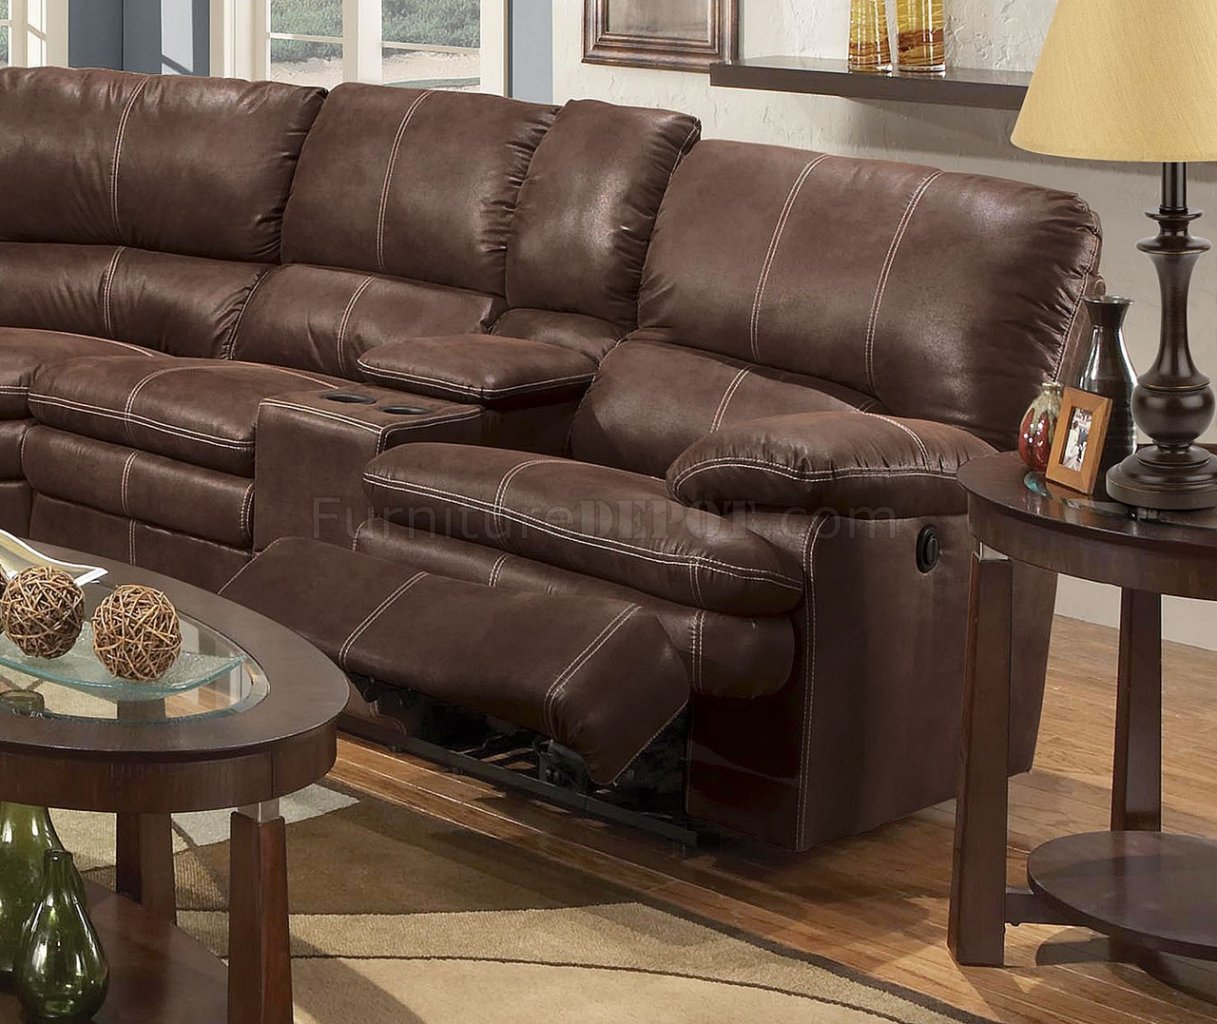 Rustic Brown Microfiber Modern Reclining Sectional